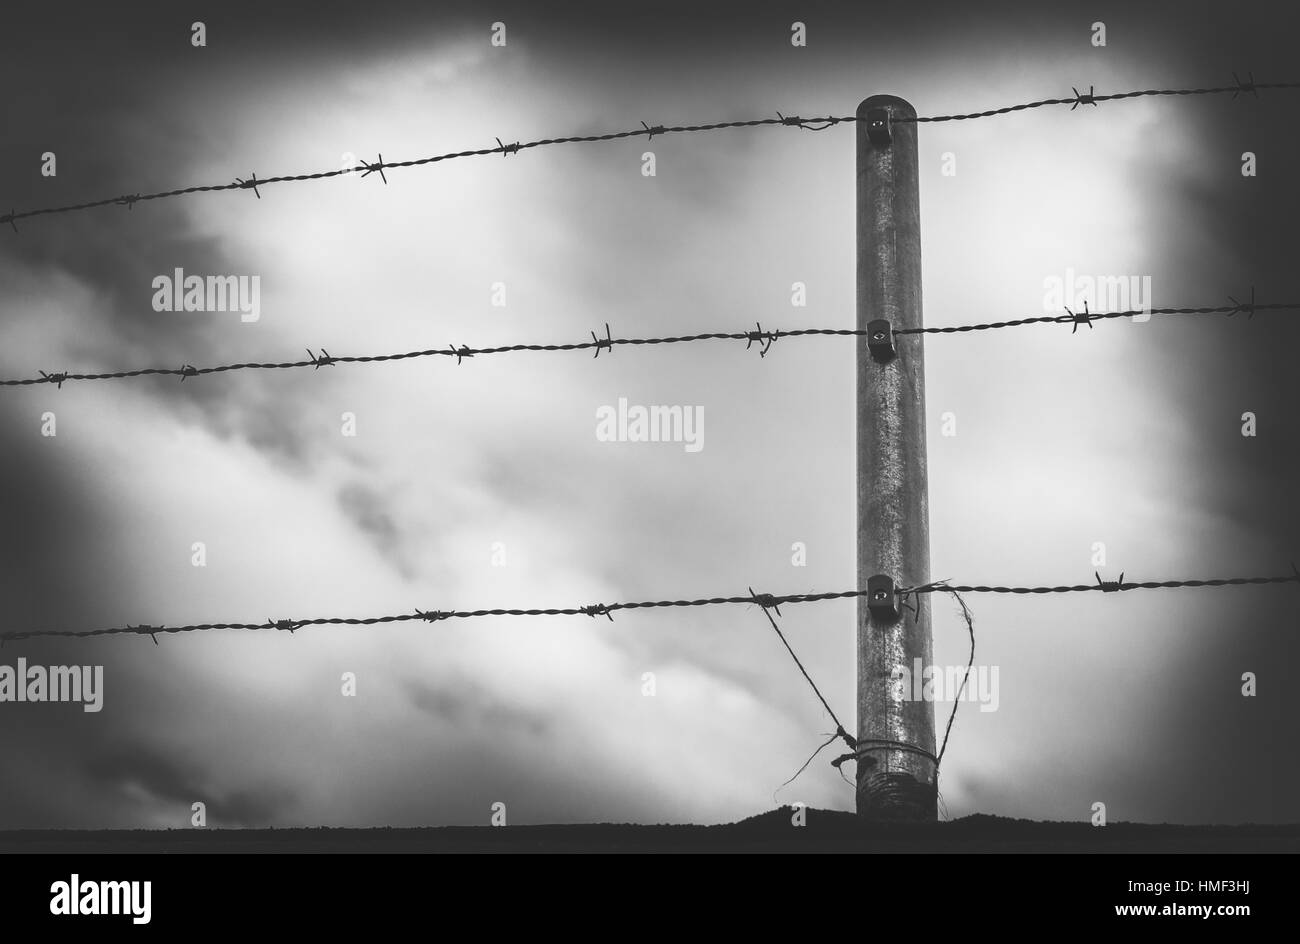 Barbwire in front of a cloudy sky - Stock Image